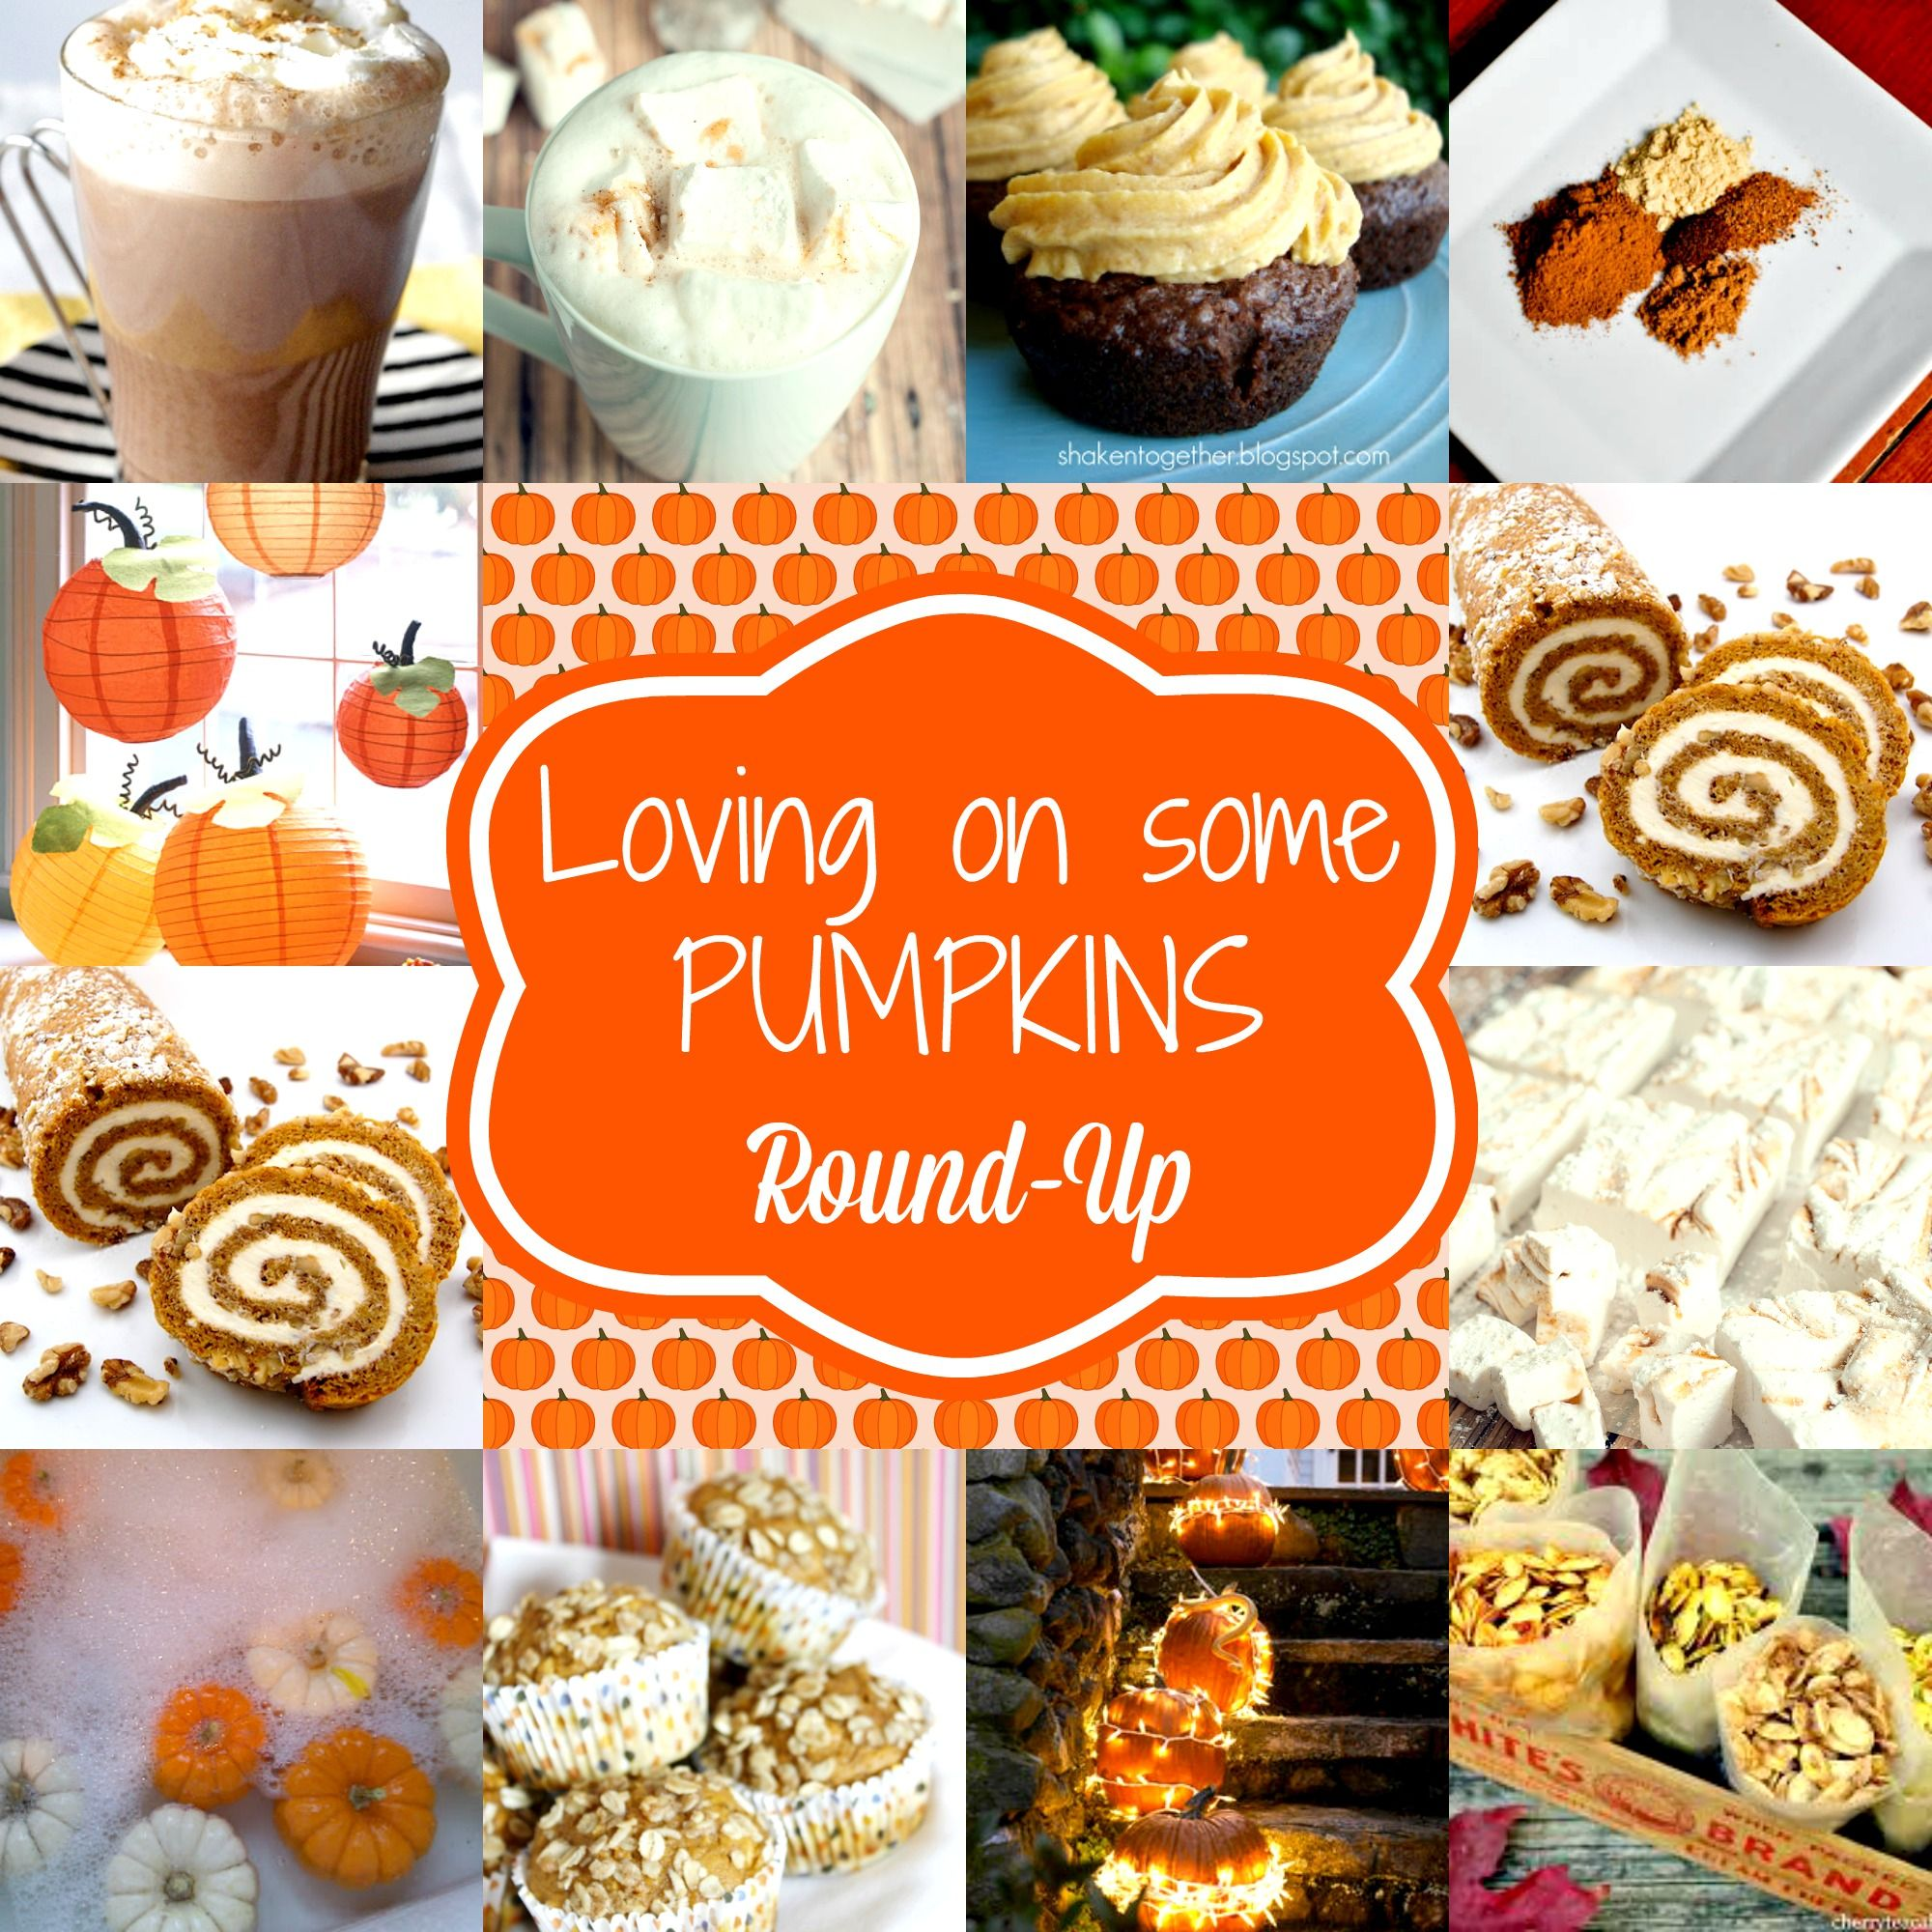 Falling in love with Pumpkins. Pumpkin round-up  #fall #pumpkin #recipes